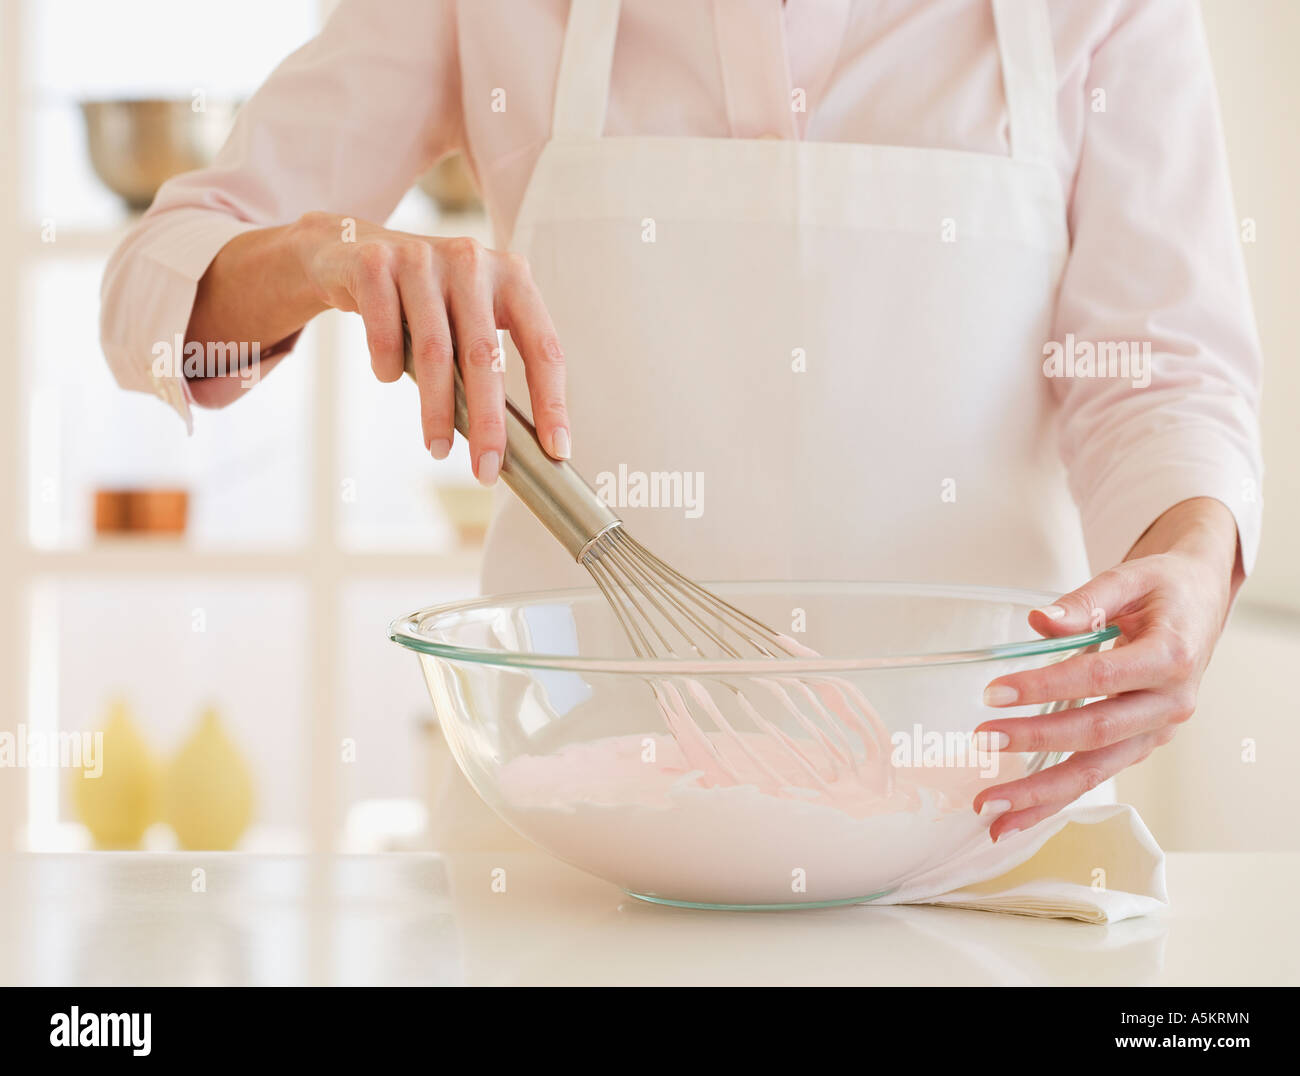 Woman wearing apron and mixing batter - Stock Image